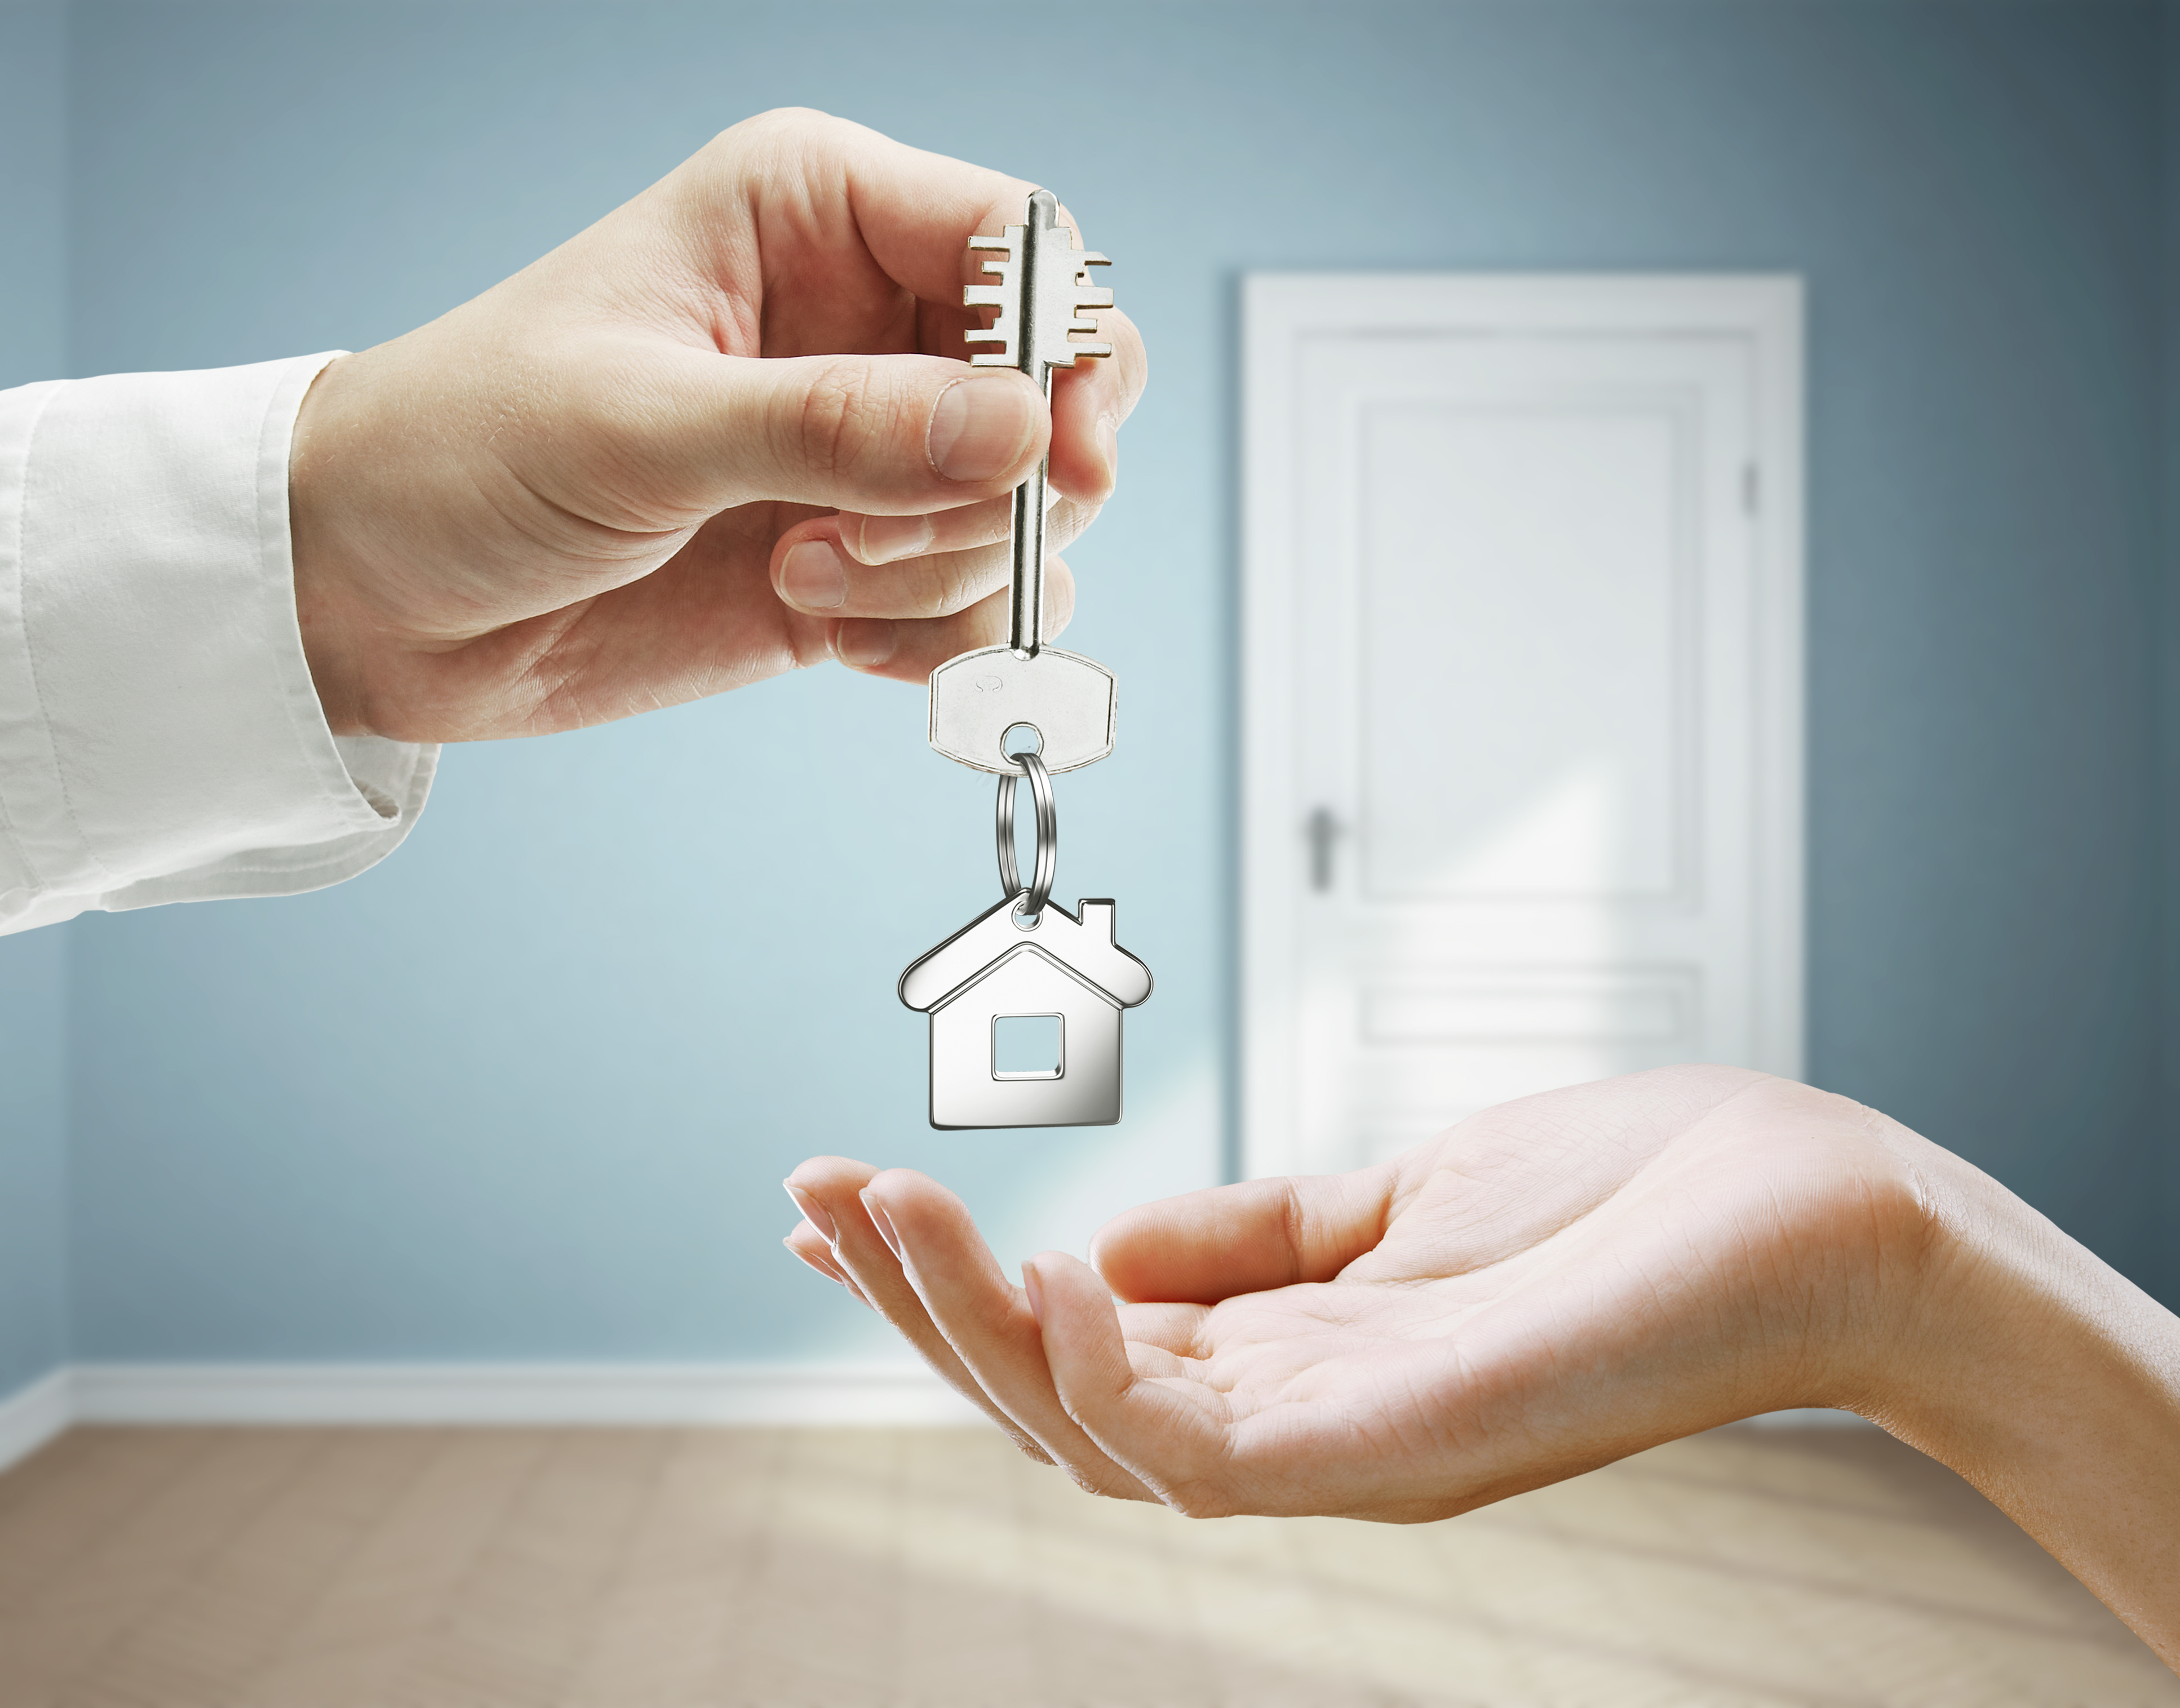 Buy a house in Garda mortgaged housing